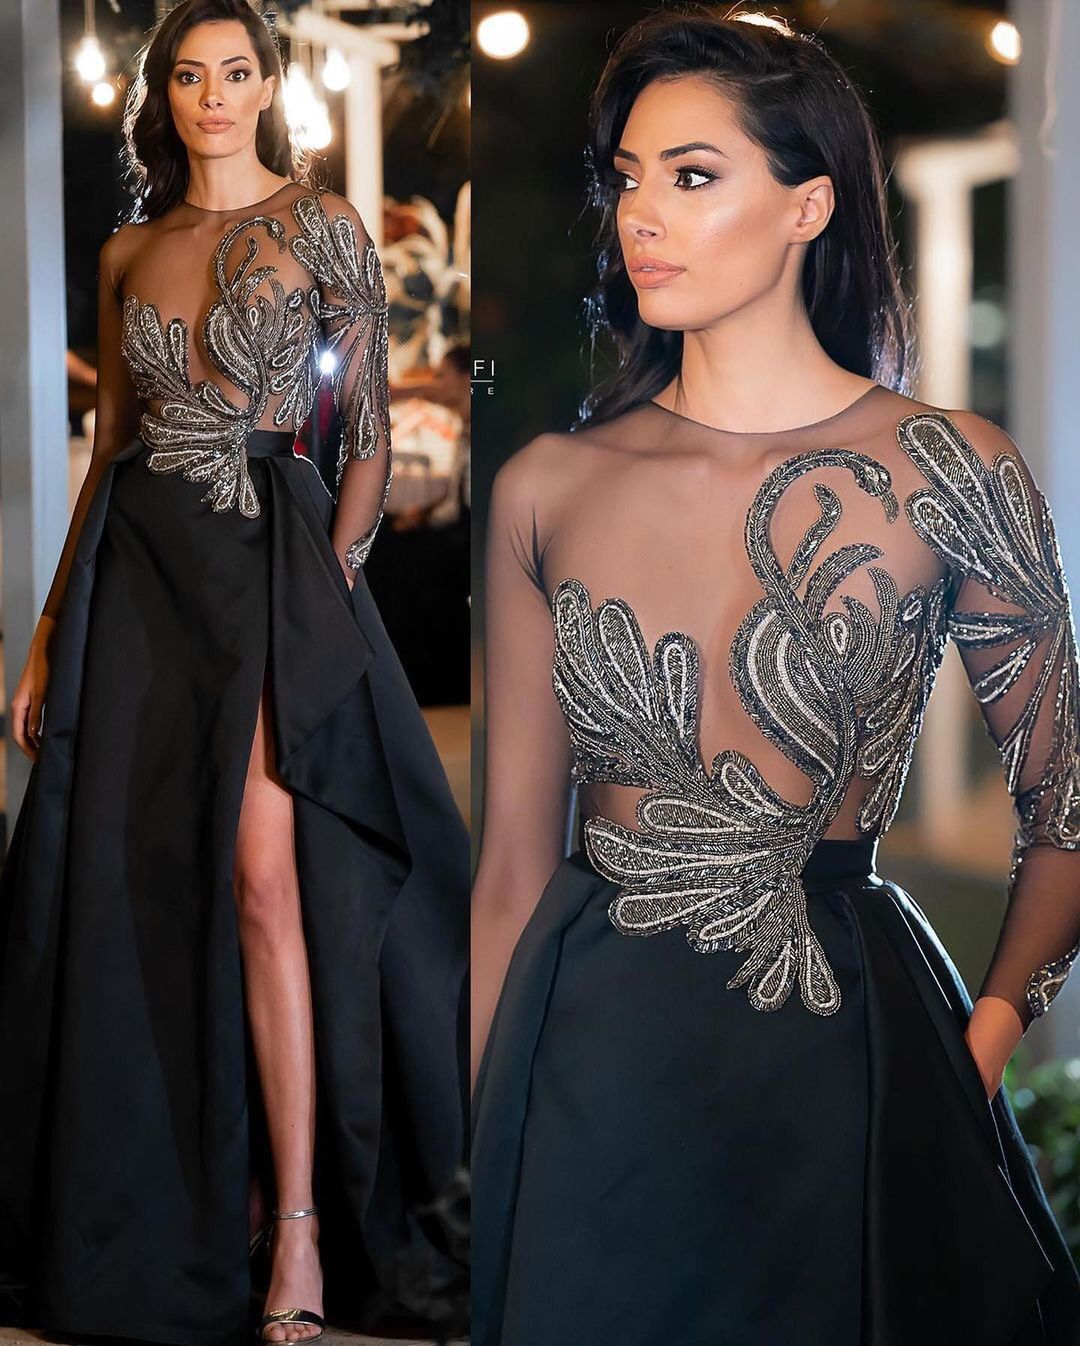 Black Mesh Long Sleeves Top with Sequin Embroidery and High Slit Gown